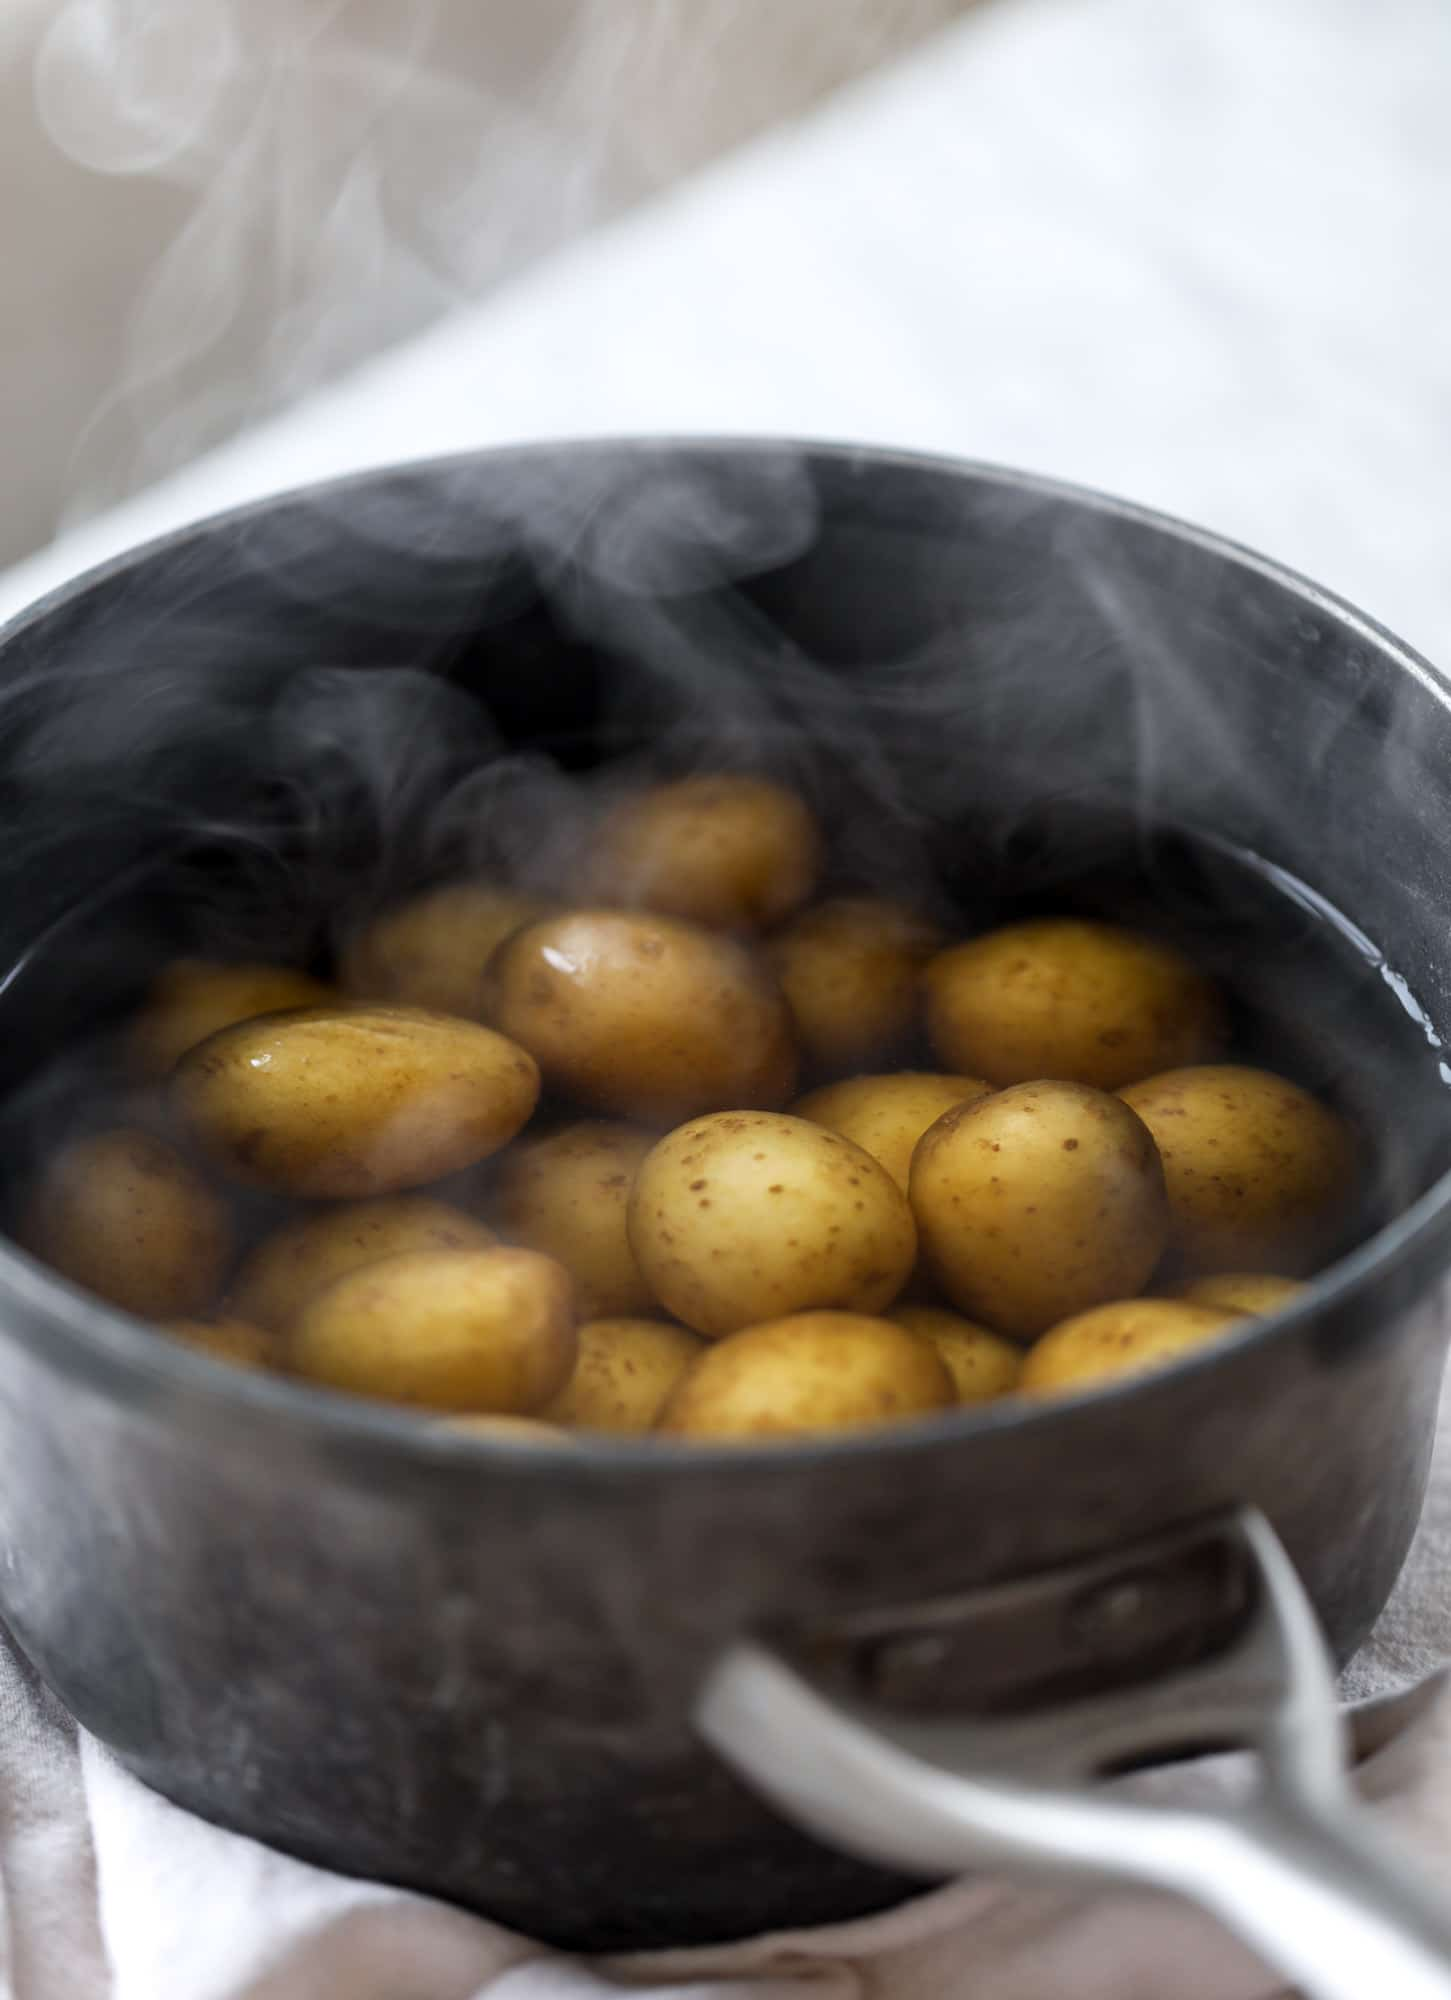 par boiling potatoes